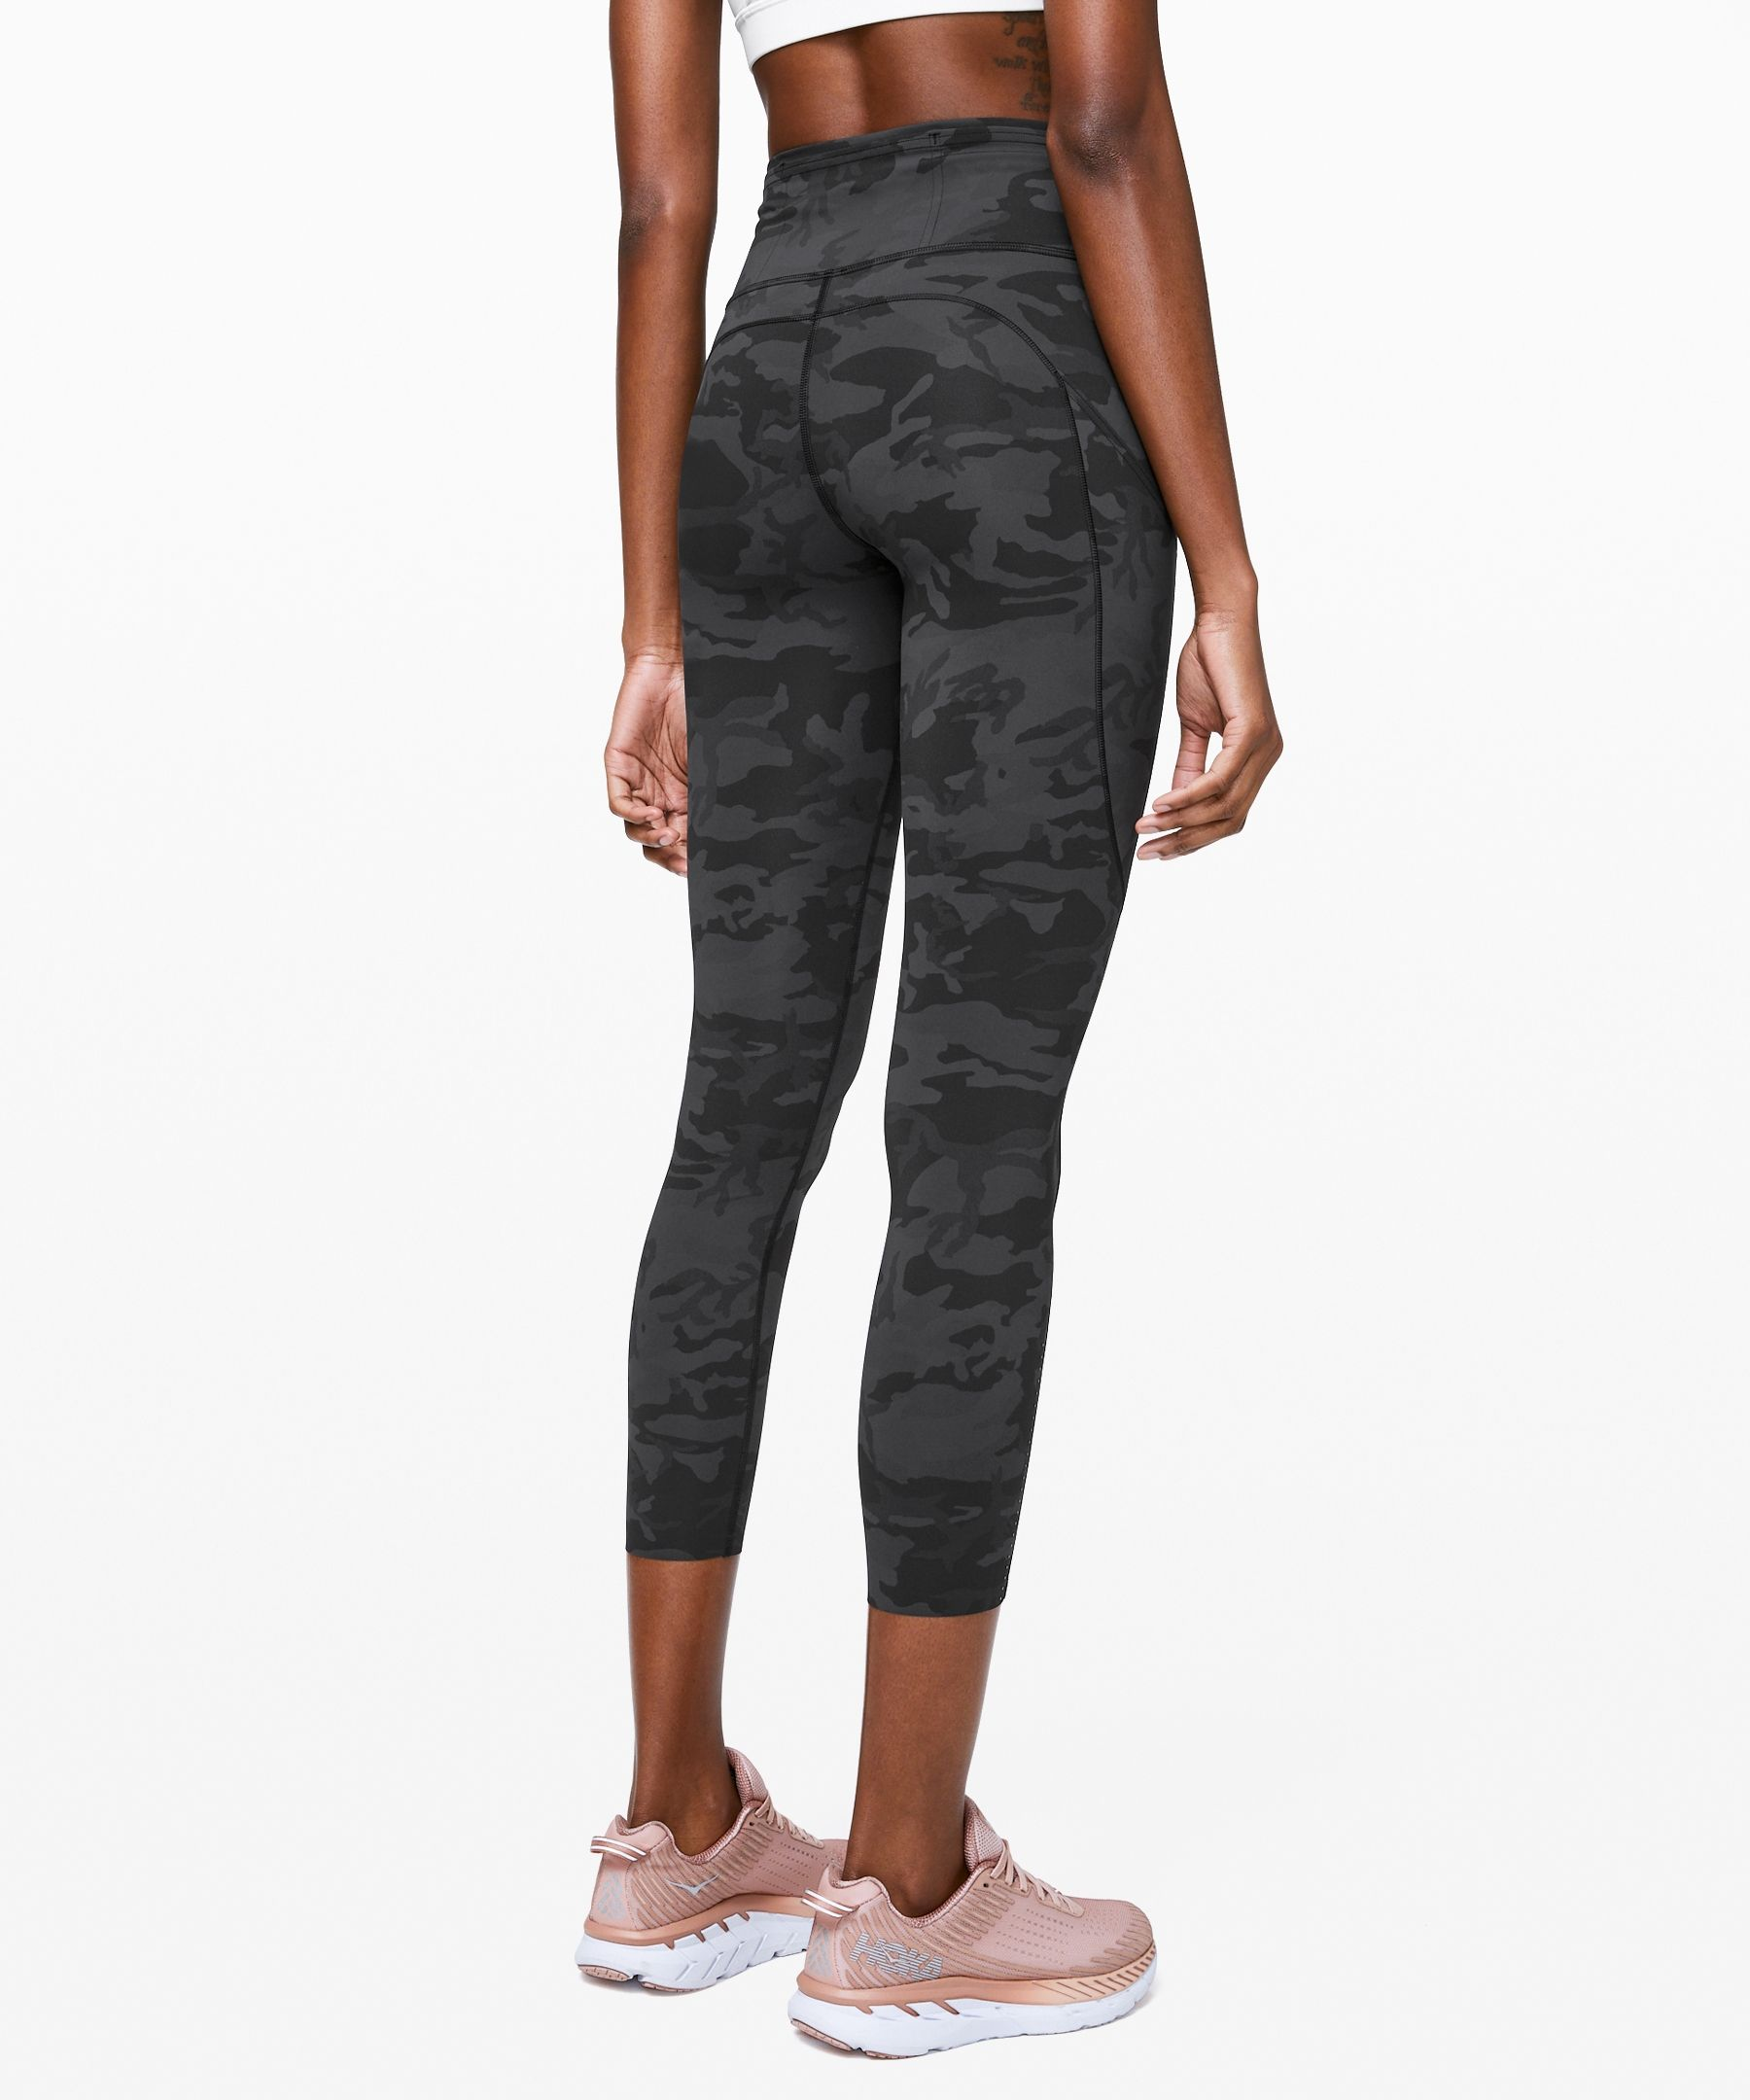 Lululemon Women S Fast And Free Legging Ii 25 Nulux Incognito Camo Multi Grey Size 10 Running Tights Women Pants For Women Running Women